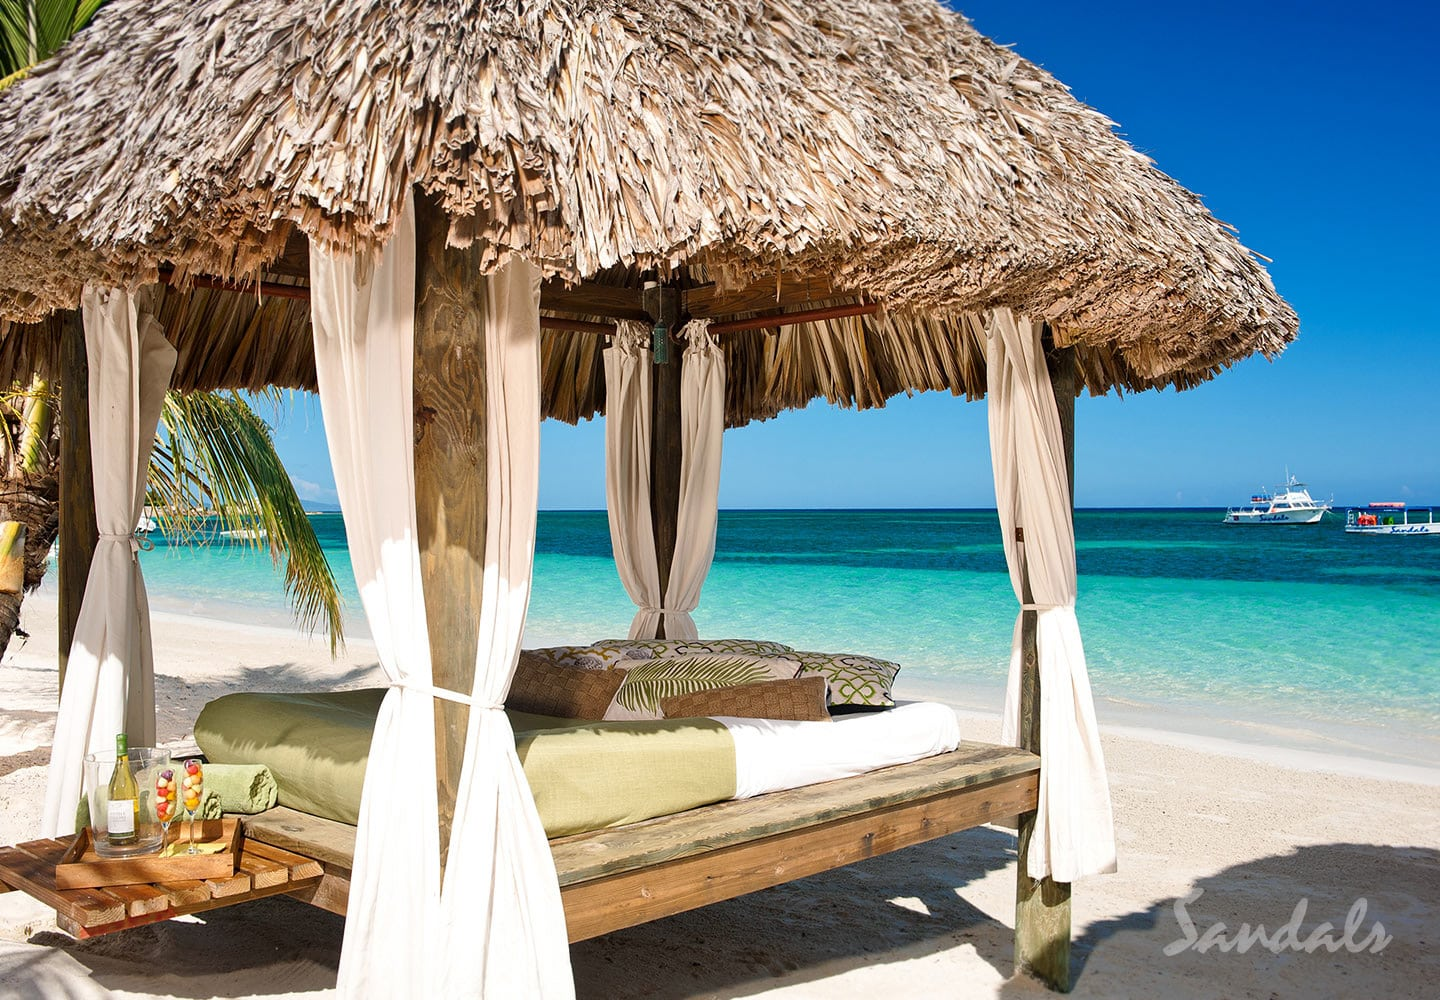 A Beach Bed At The Sandals Montego Bay Resort In Jamaica Perfect For All Inclusive